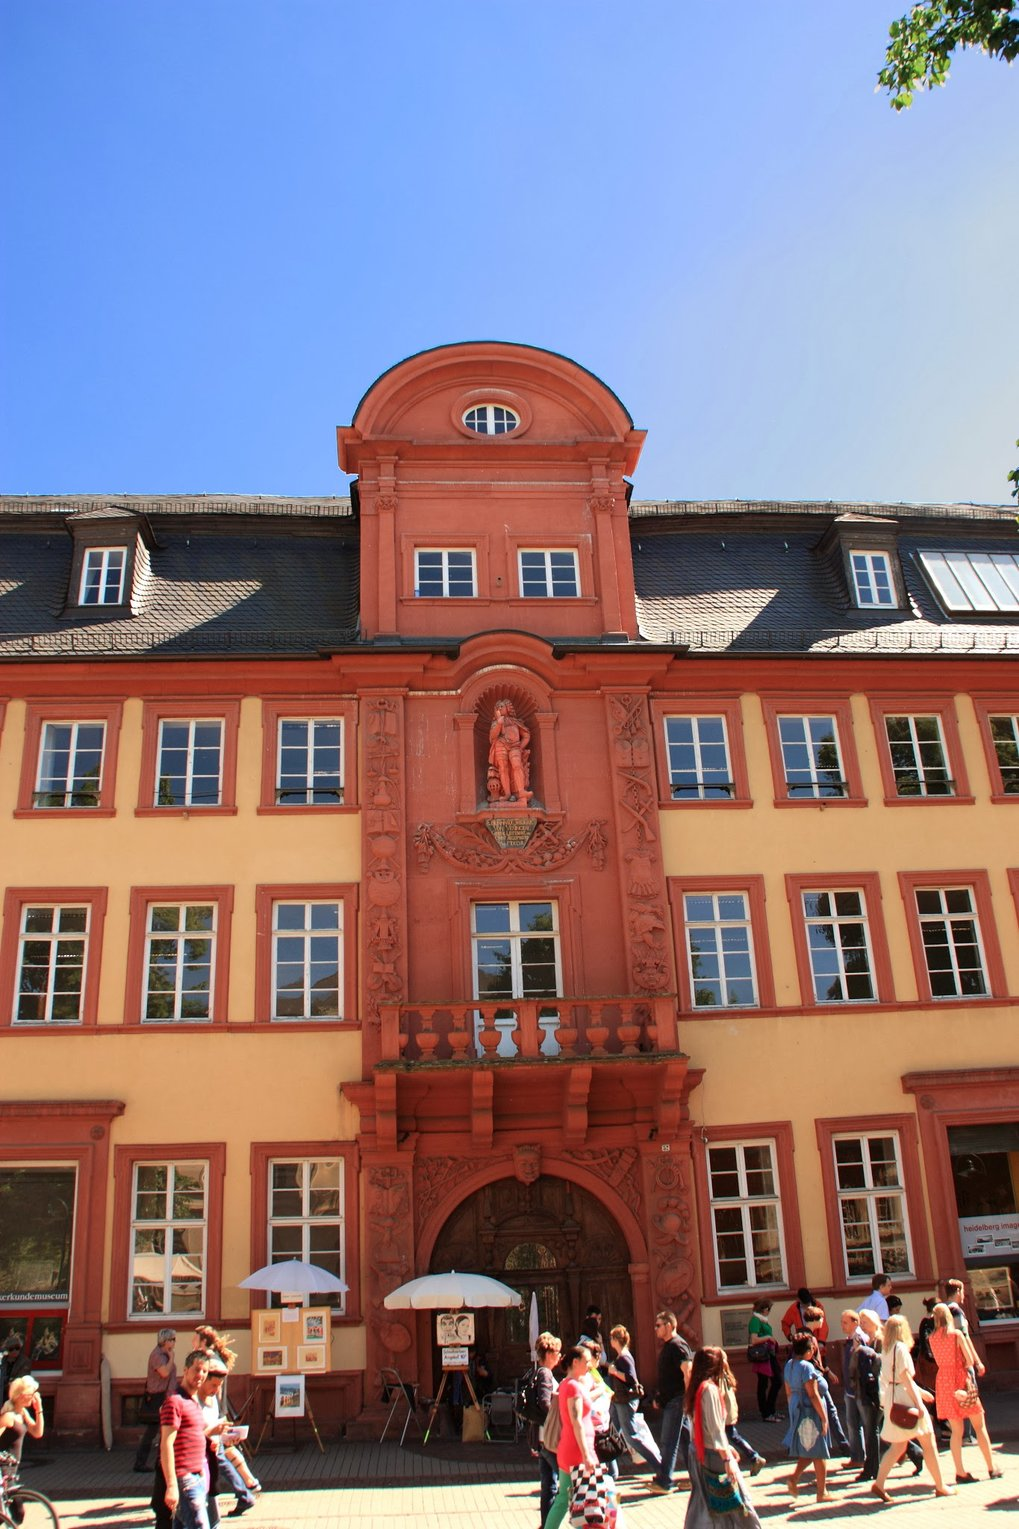 """Haus zum Riesen"" (literally ""Haus [with the] Giant"") in Heidelberg. This is where Bunsen und Kirchhoff invented astrochemistry, taking spectroscopic measurements of the Sun."